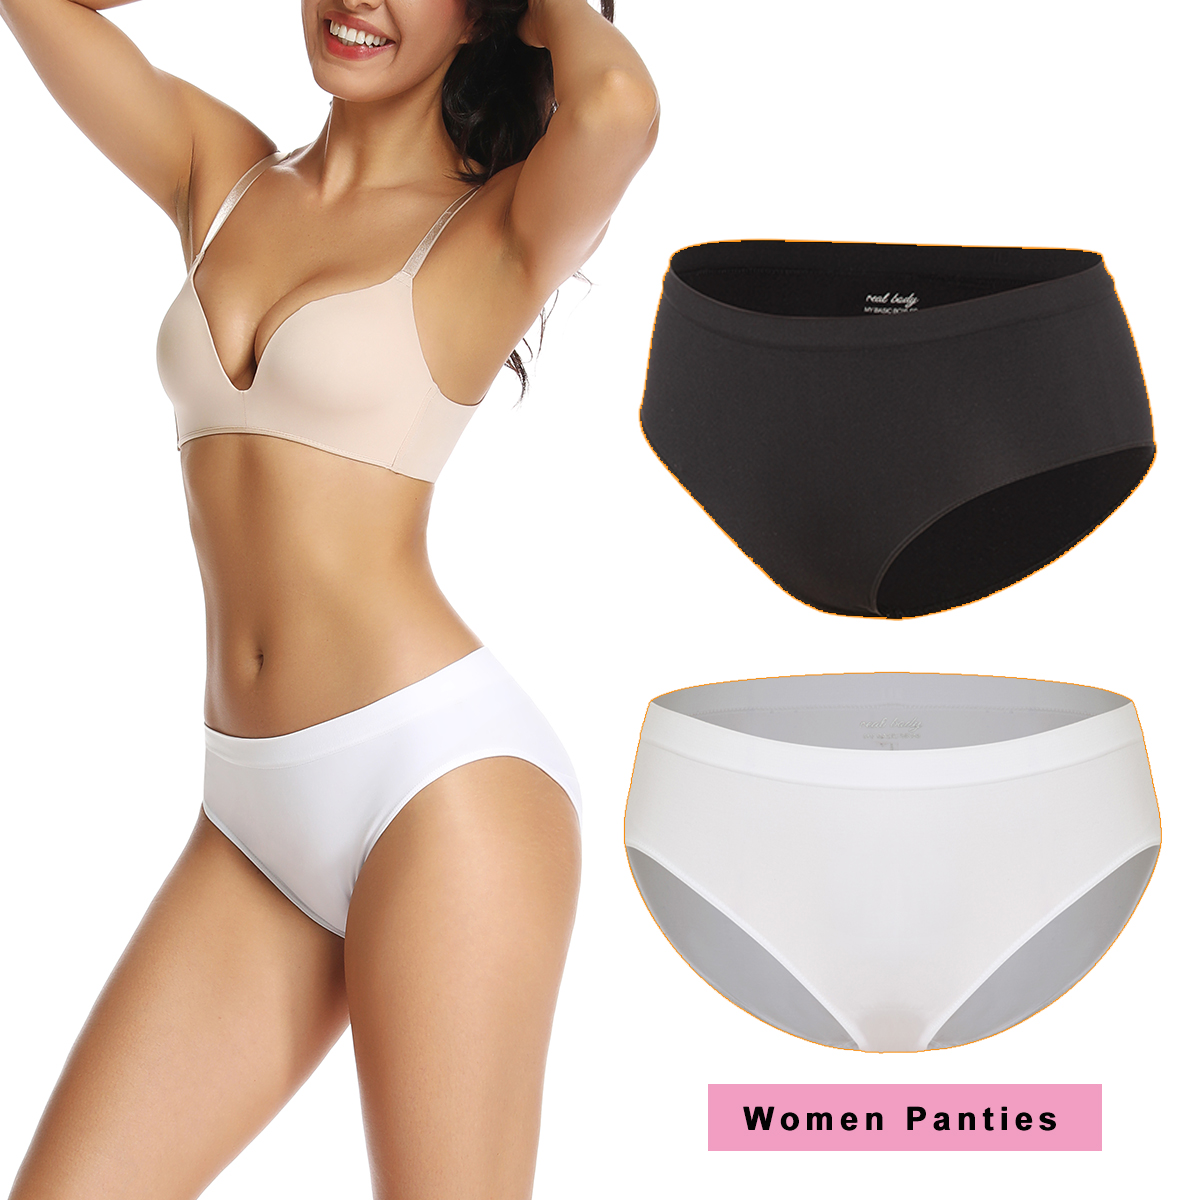 Women Panties Briefs Seamless Underwear Sexy Panty Underpants Cotton Crotch G String Women's Intimates Bikini Shorts Lingerie